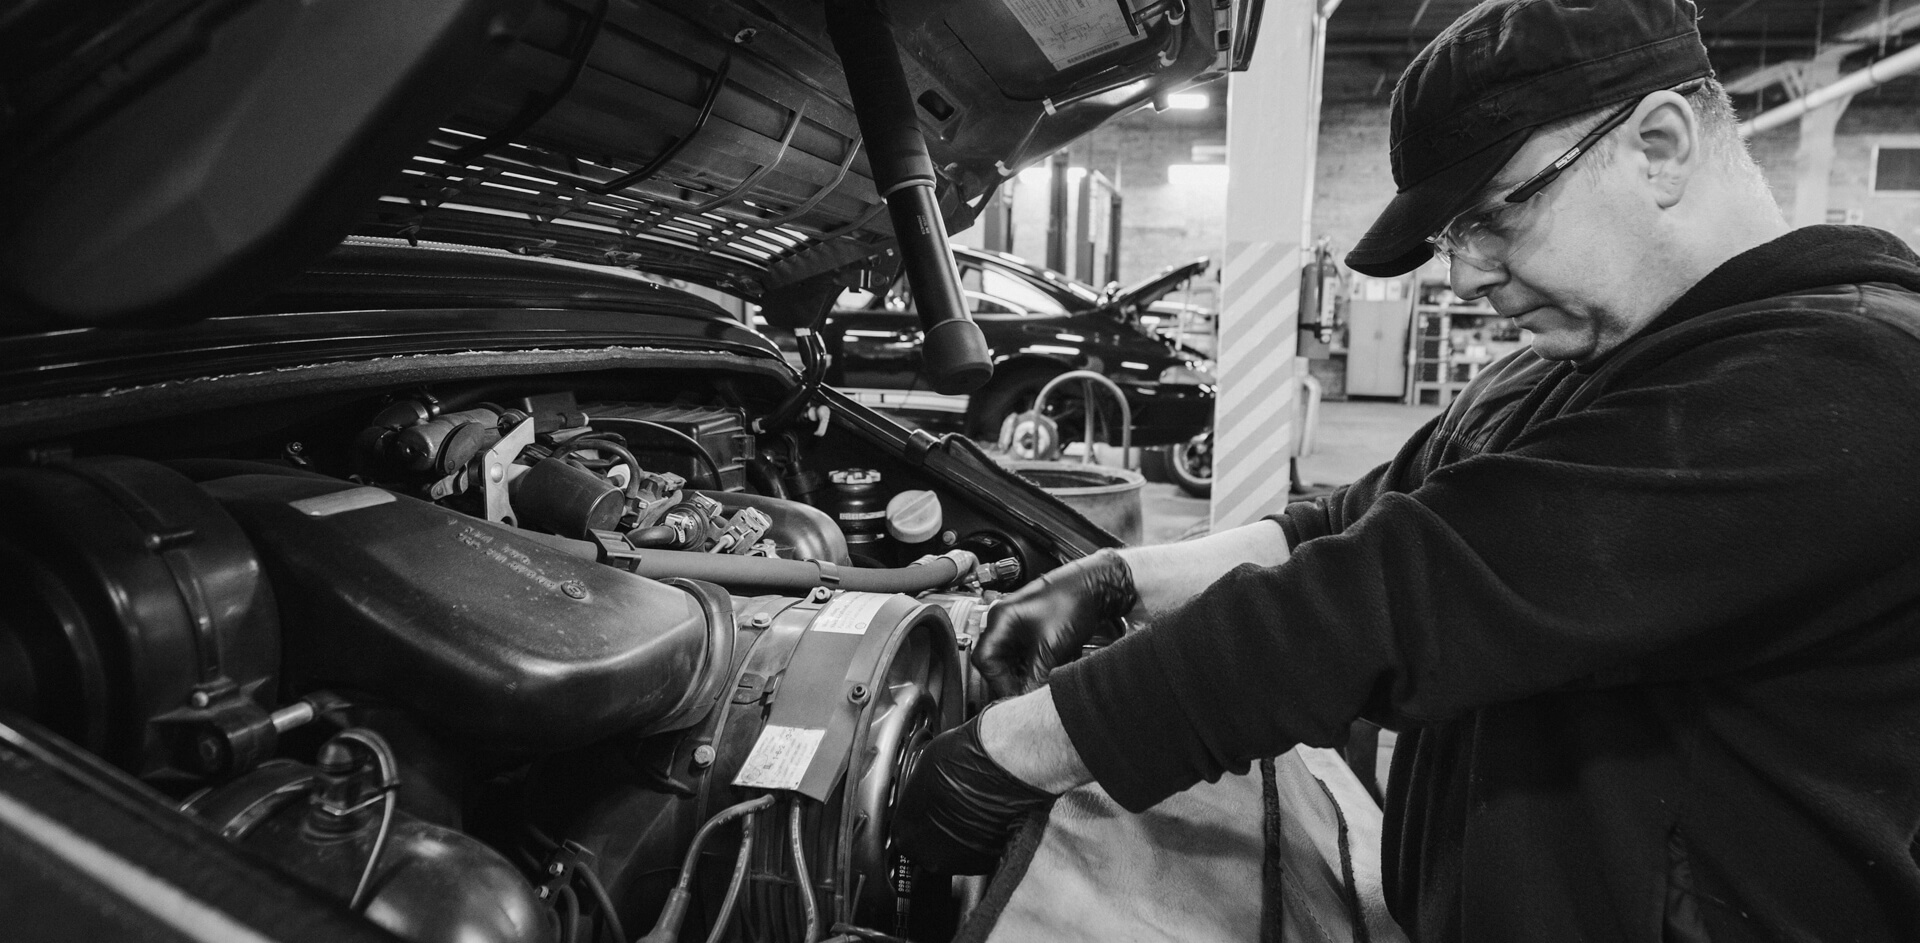 Midwest Performace Car Services